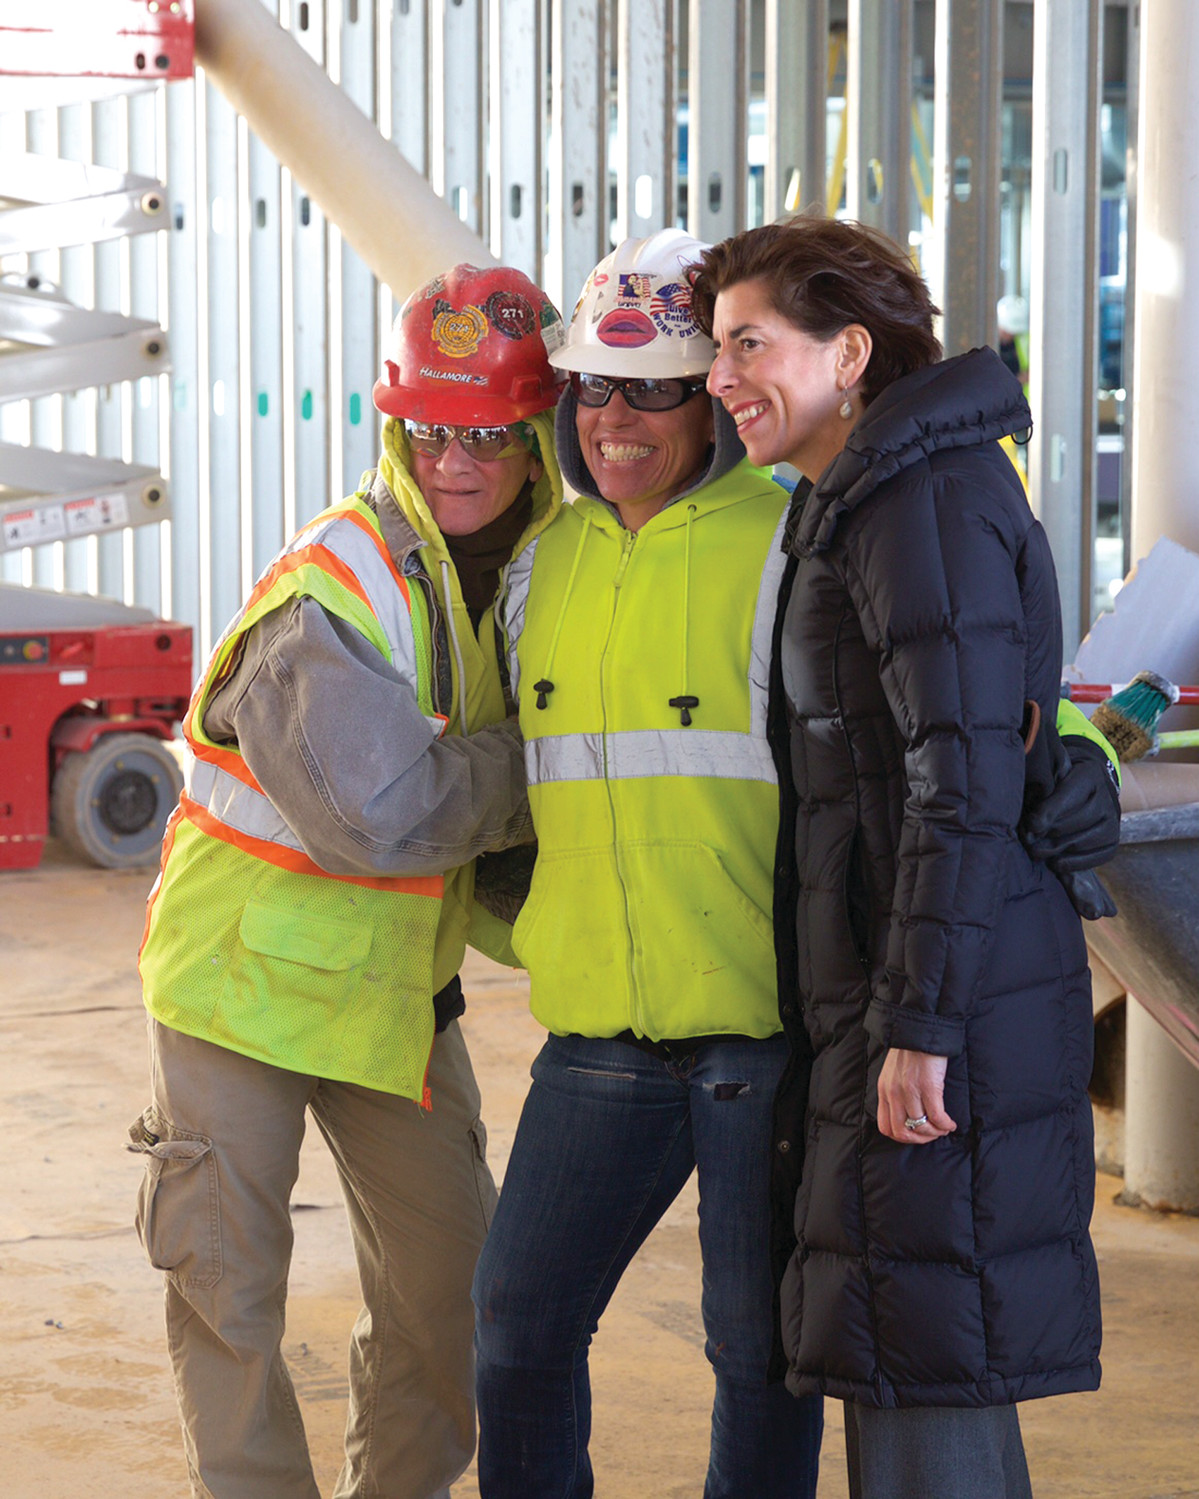 ALL SMILES: Governor Raimondo with some of the workers working on the site.